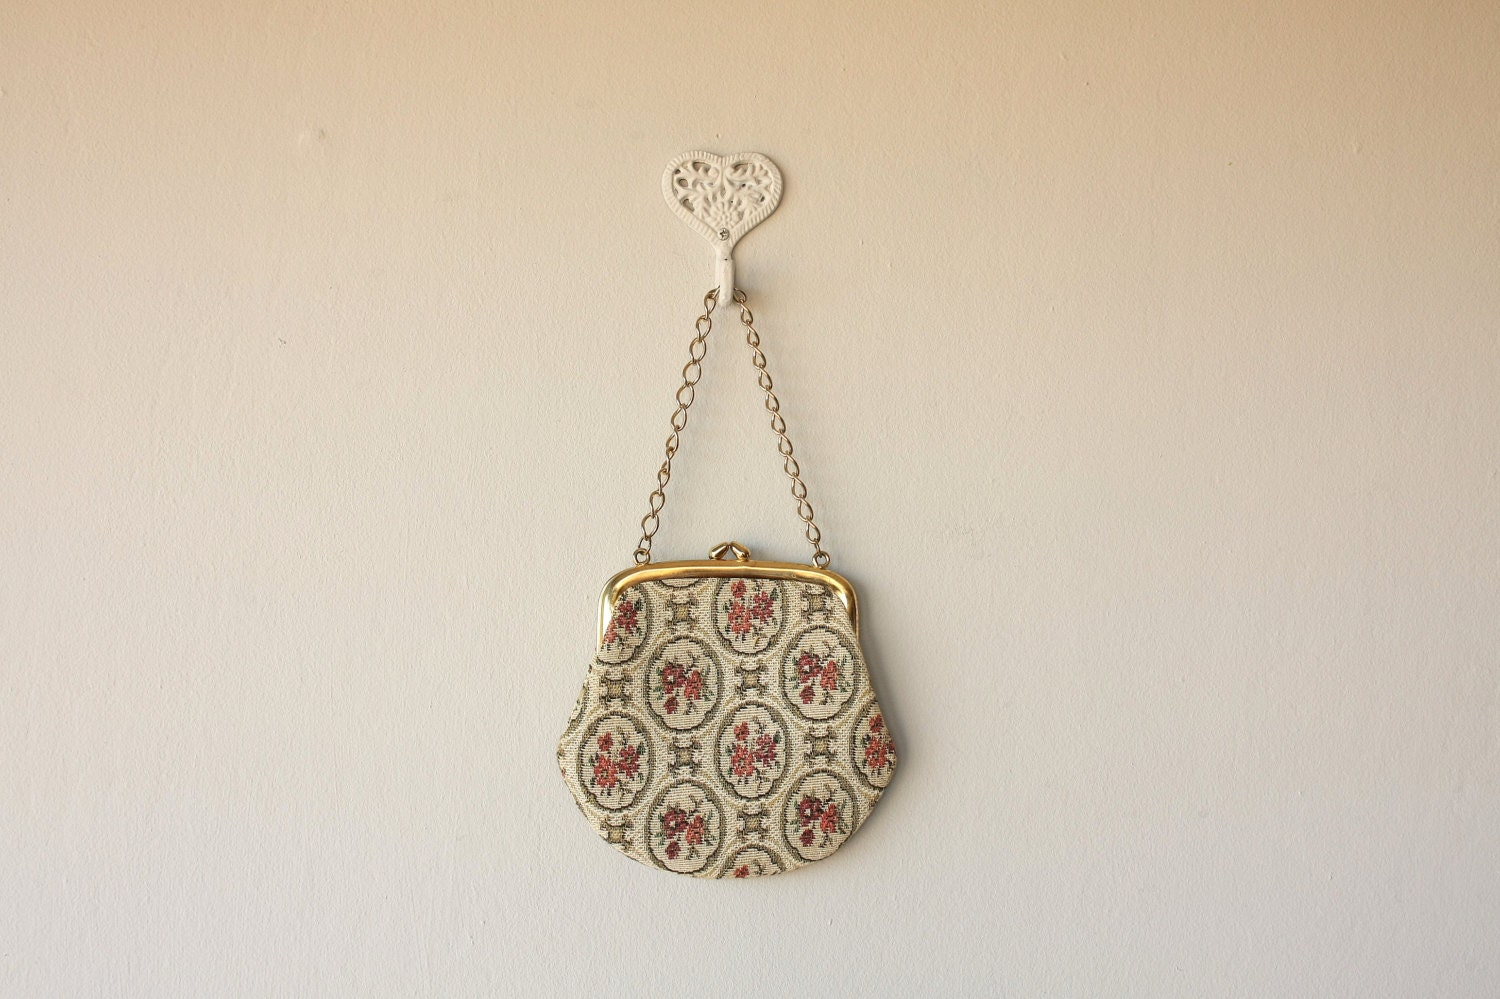 1960s tapestry bag / chain strap purse / tapestry handbag / clasp purse